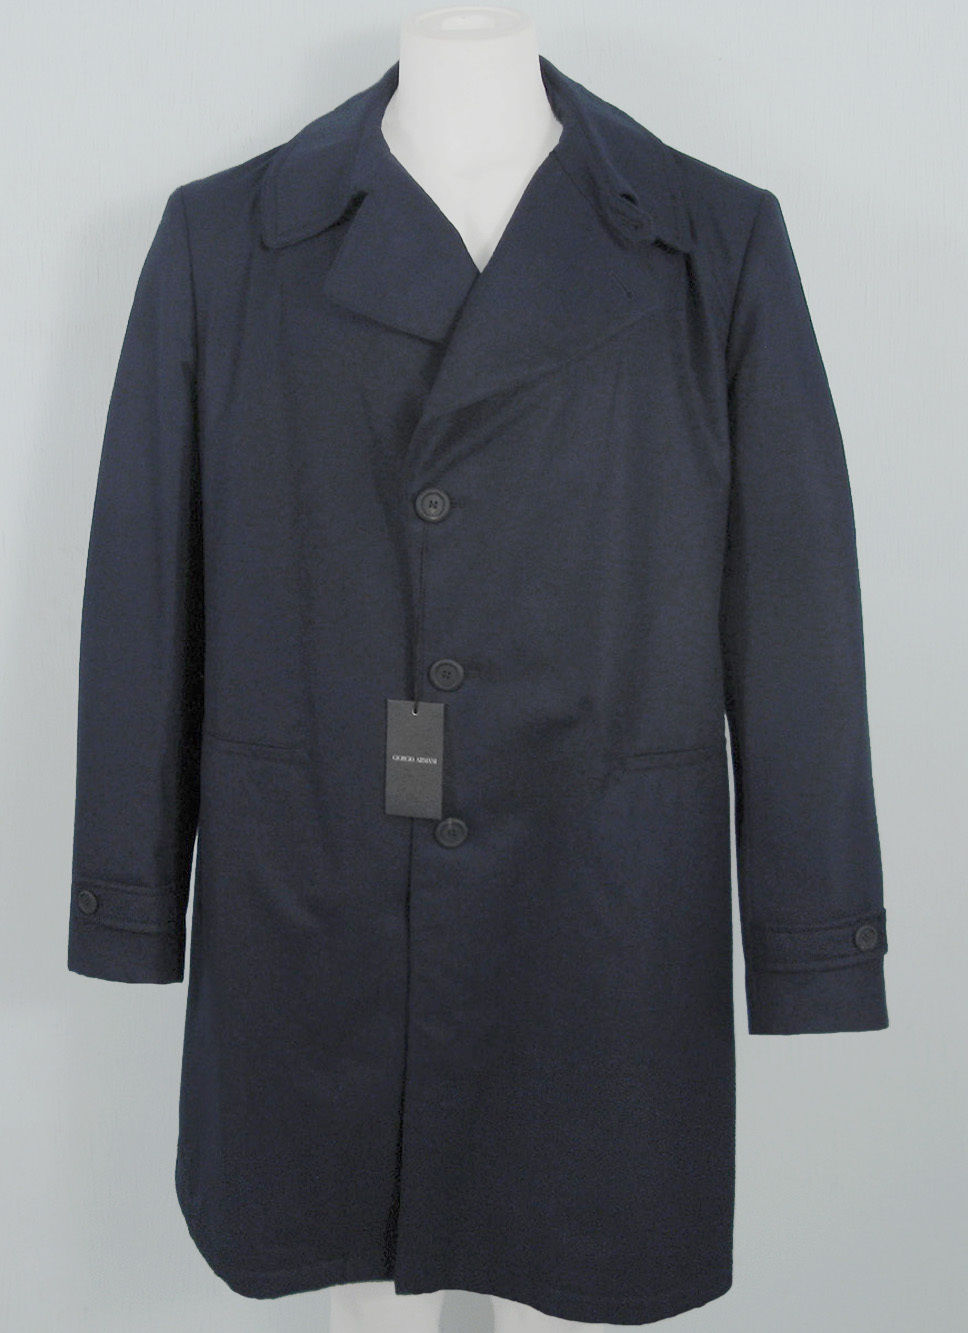 NEW! $3995 Giorgio Armani Pure Cashmere Overcoat! 44 e 54  *Dark Navy*